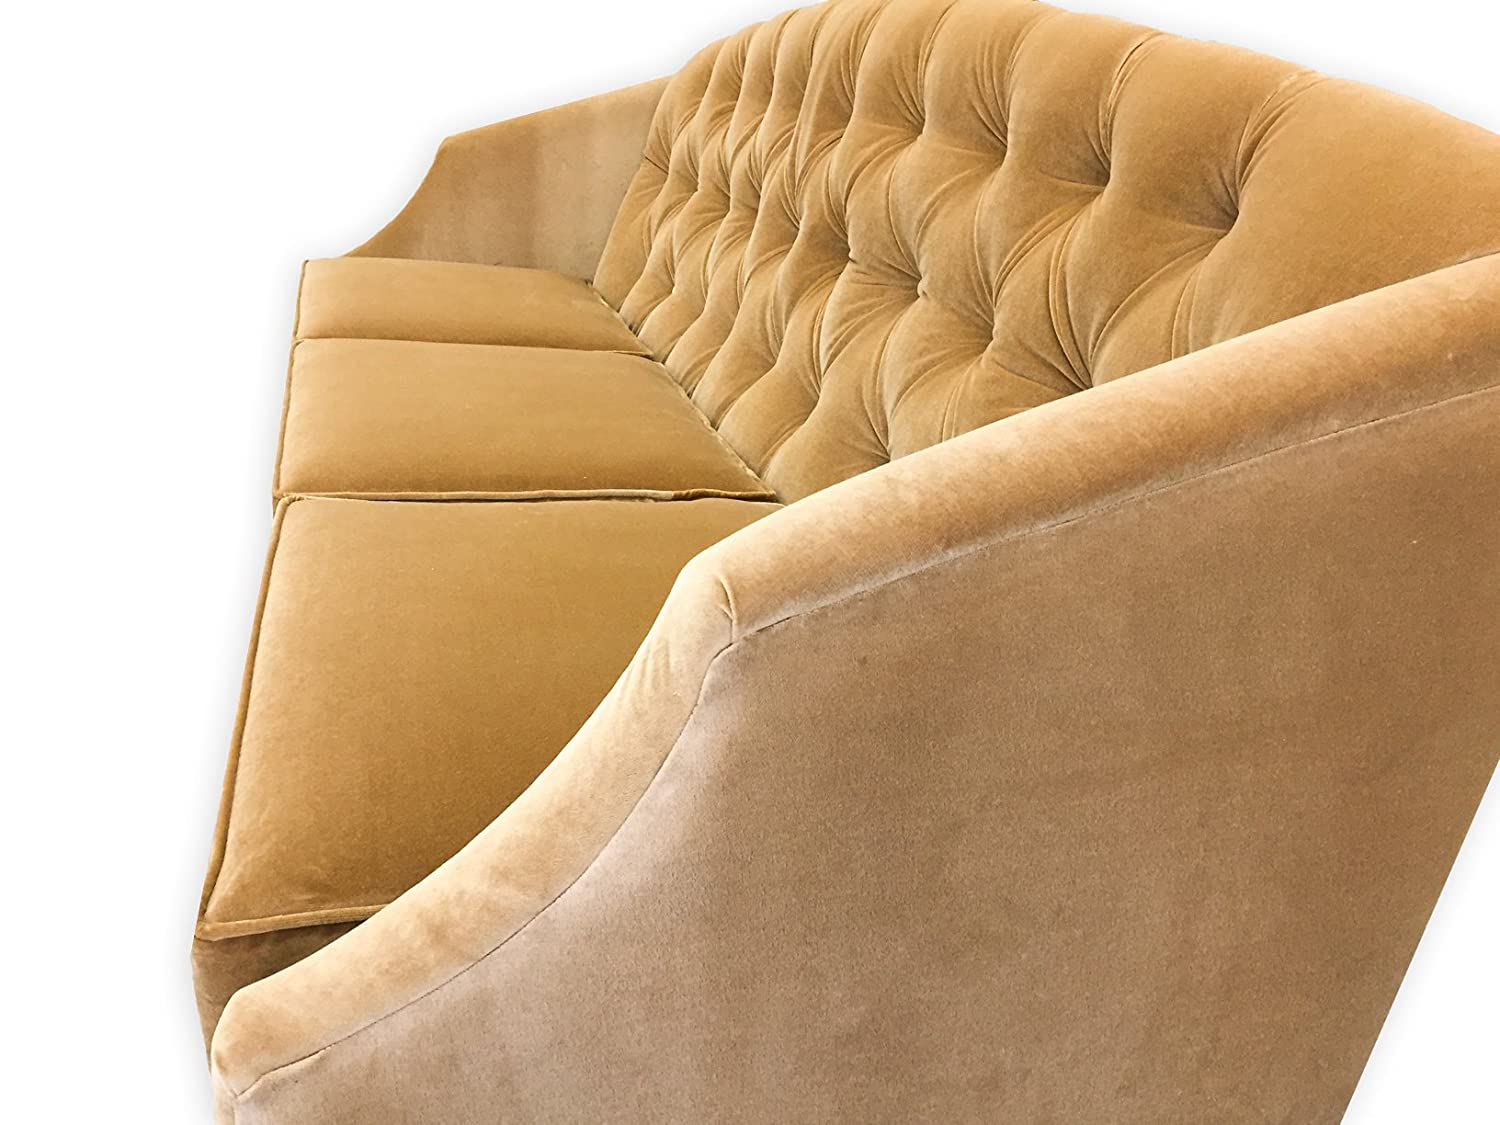 The Sofa Source Flex-Grip, Curve Ease- 25 ft Flexible Metal Tack Strip Three-Tooth Upholstery